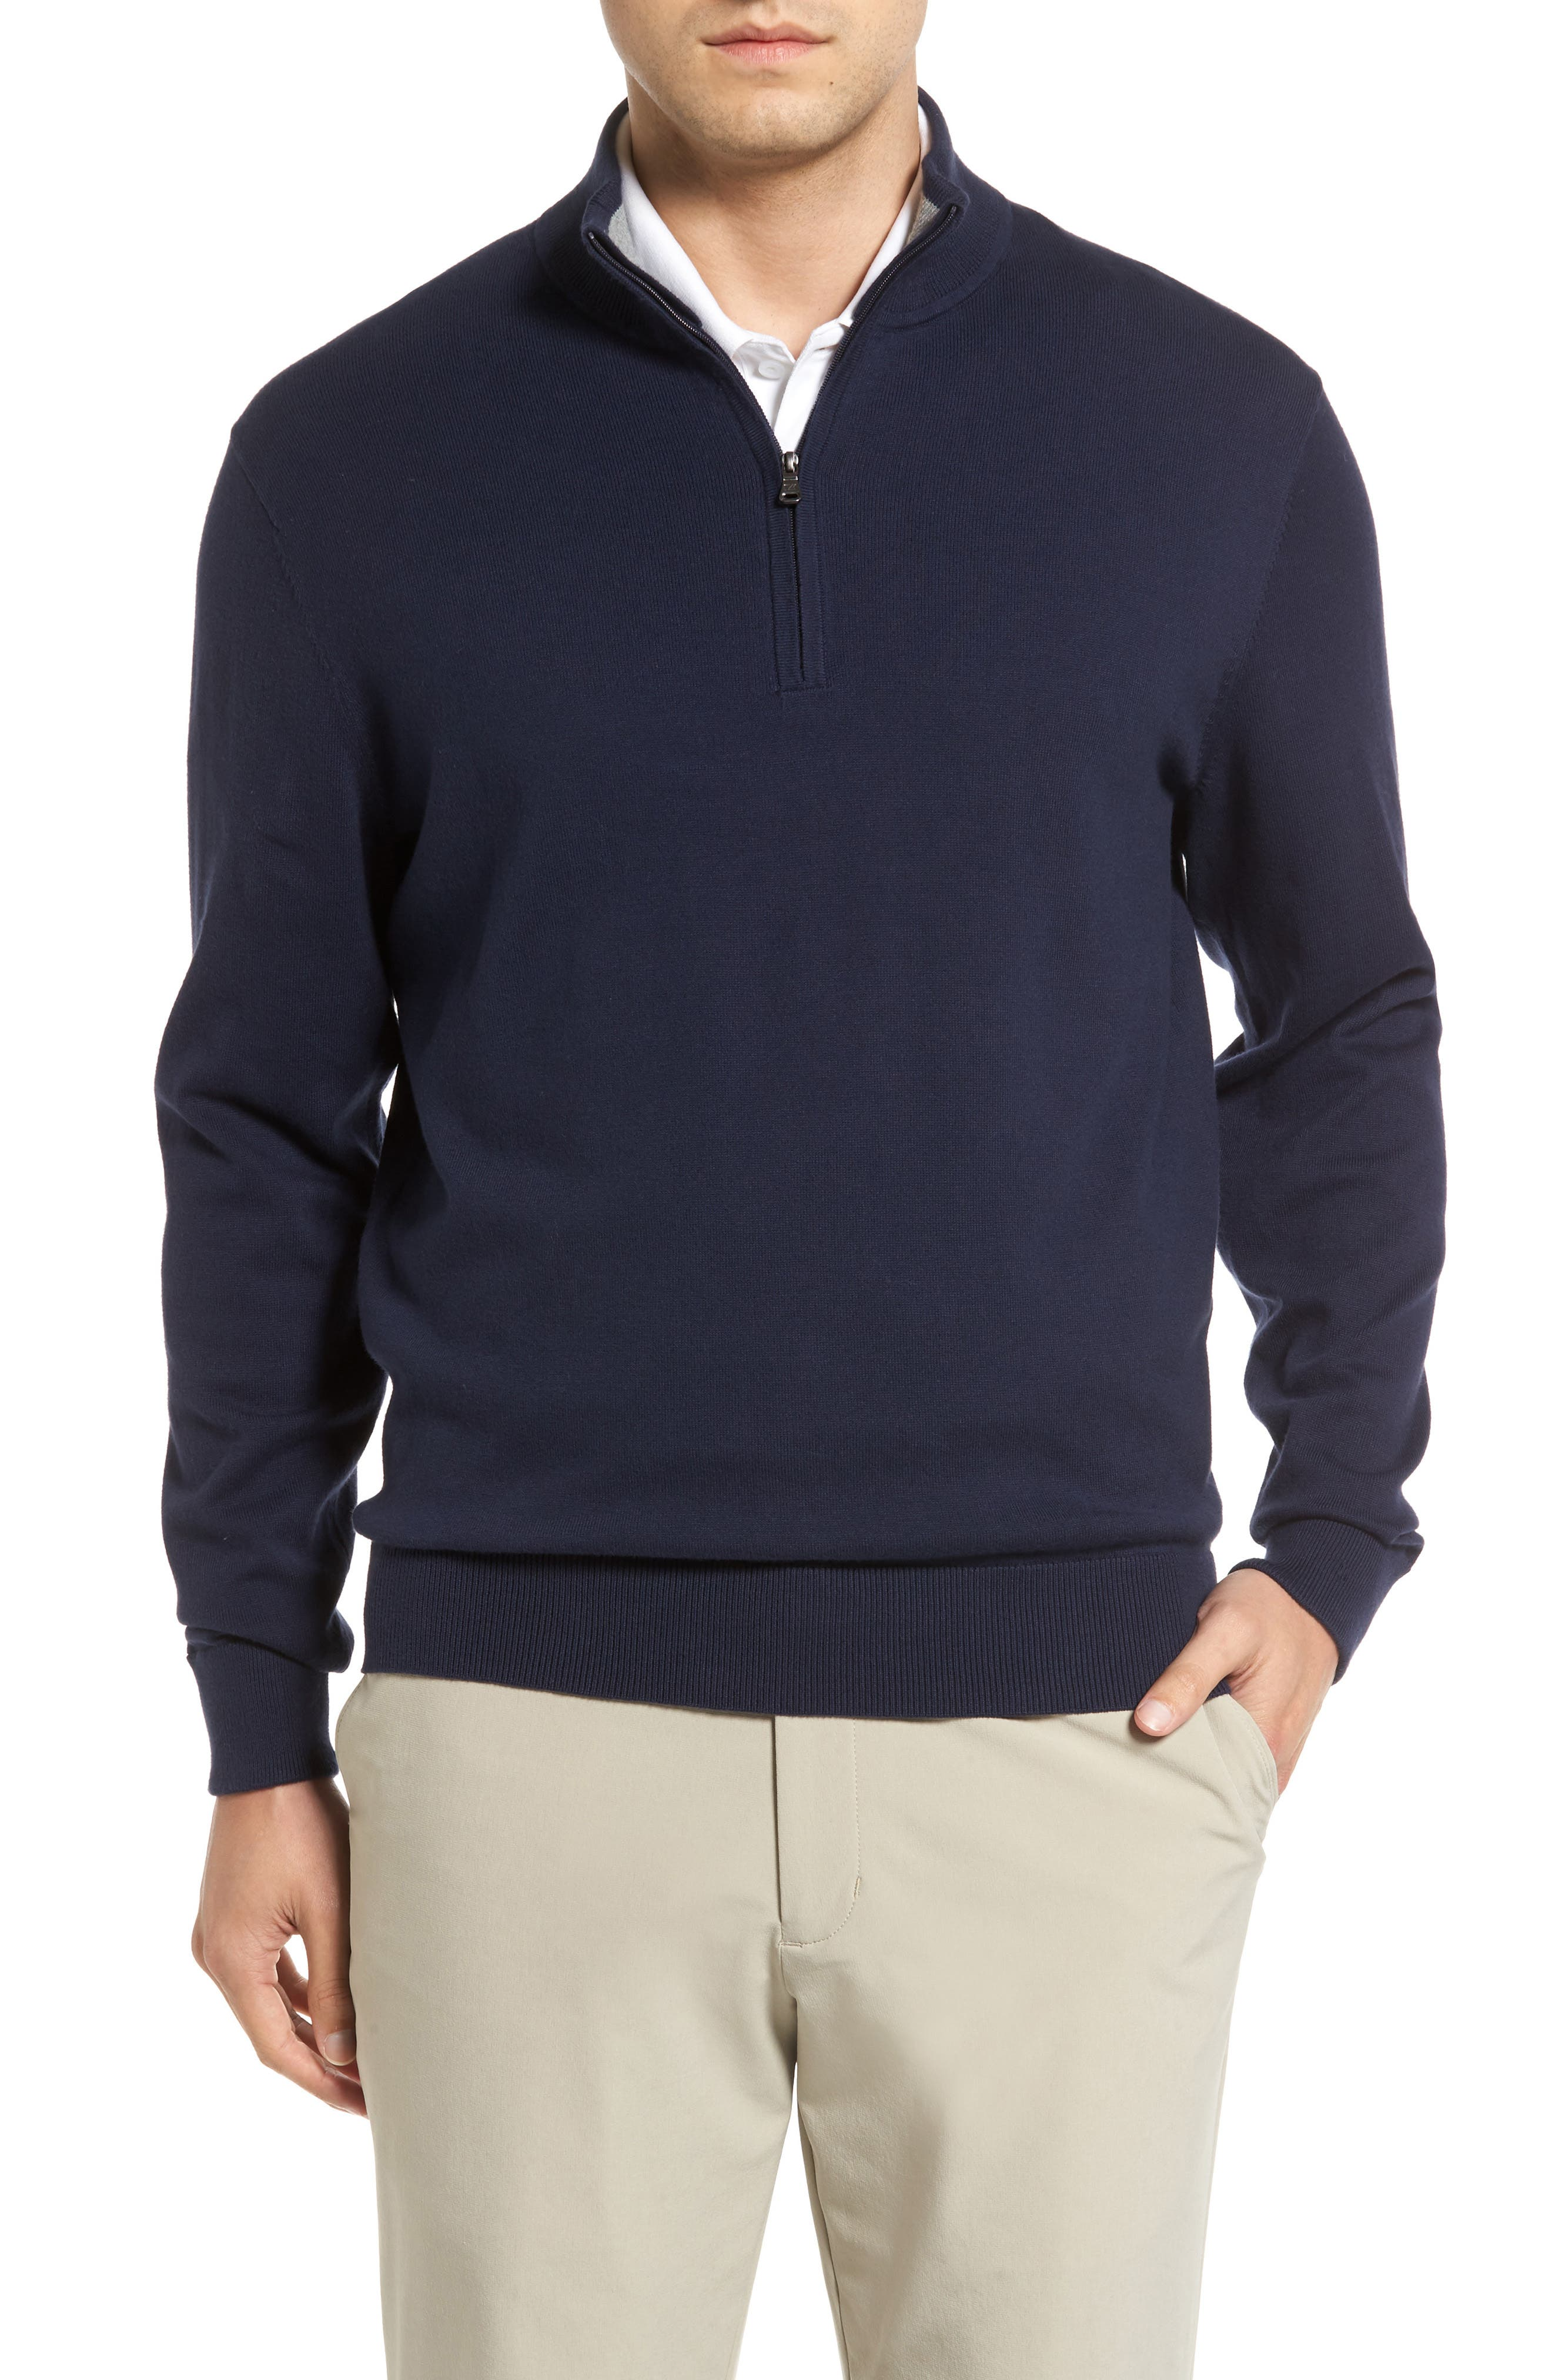 Cutter & Buck Lakemont Half Zip Sweater (Big & Tall)